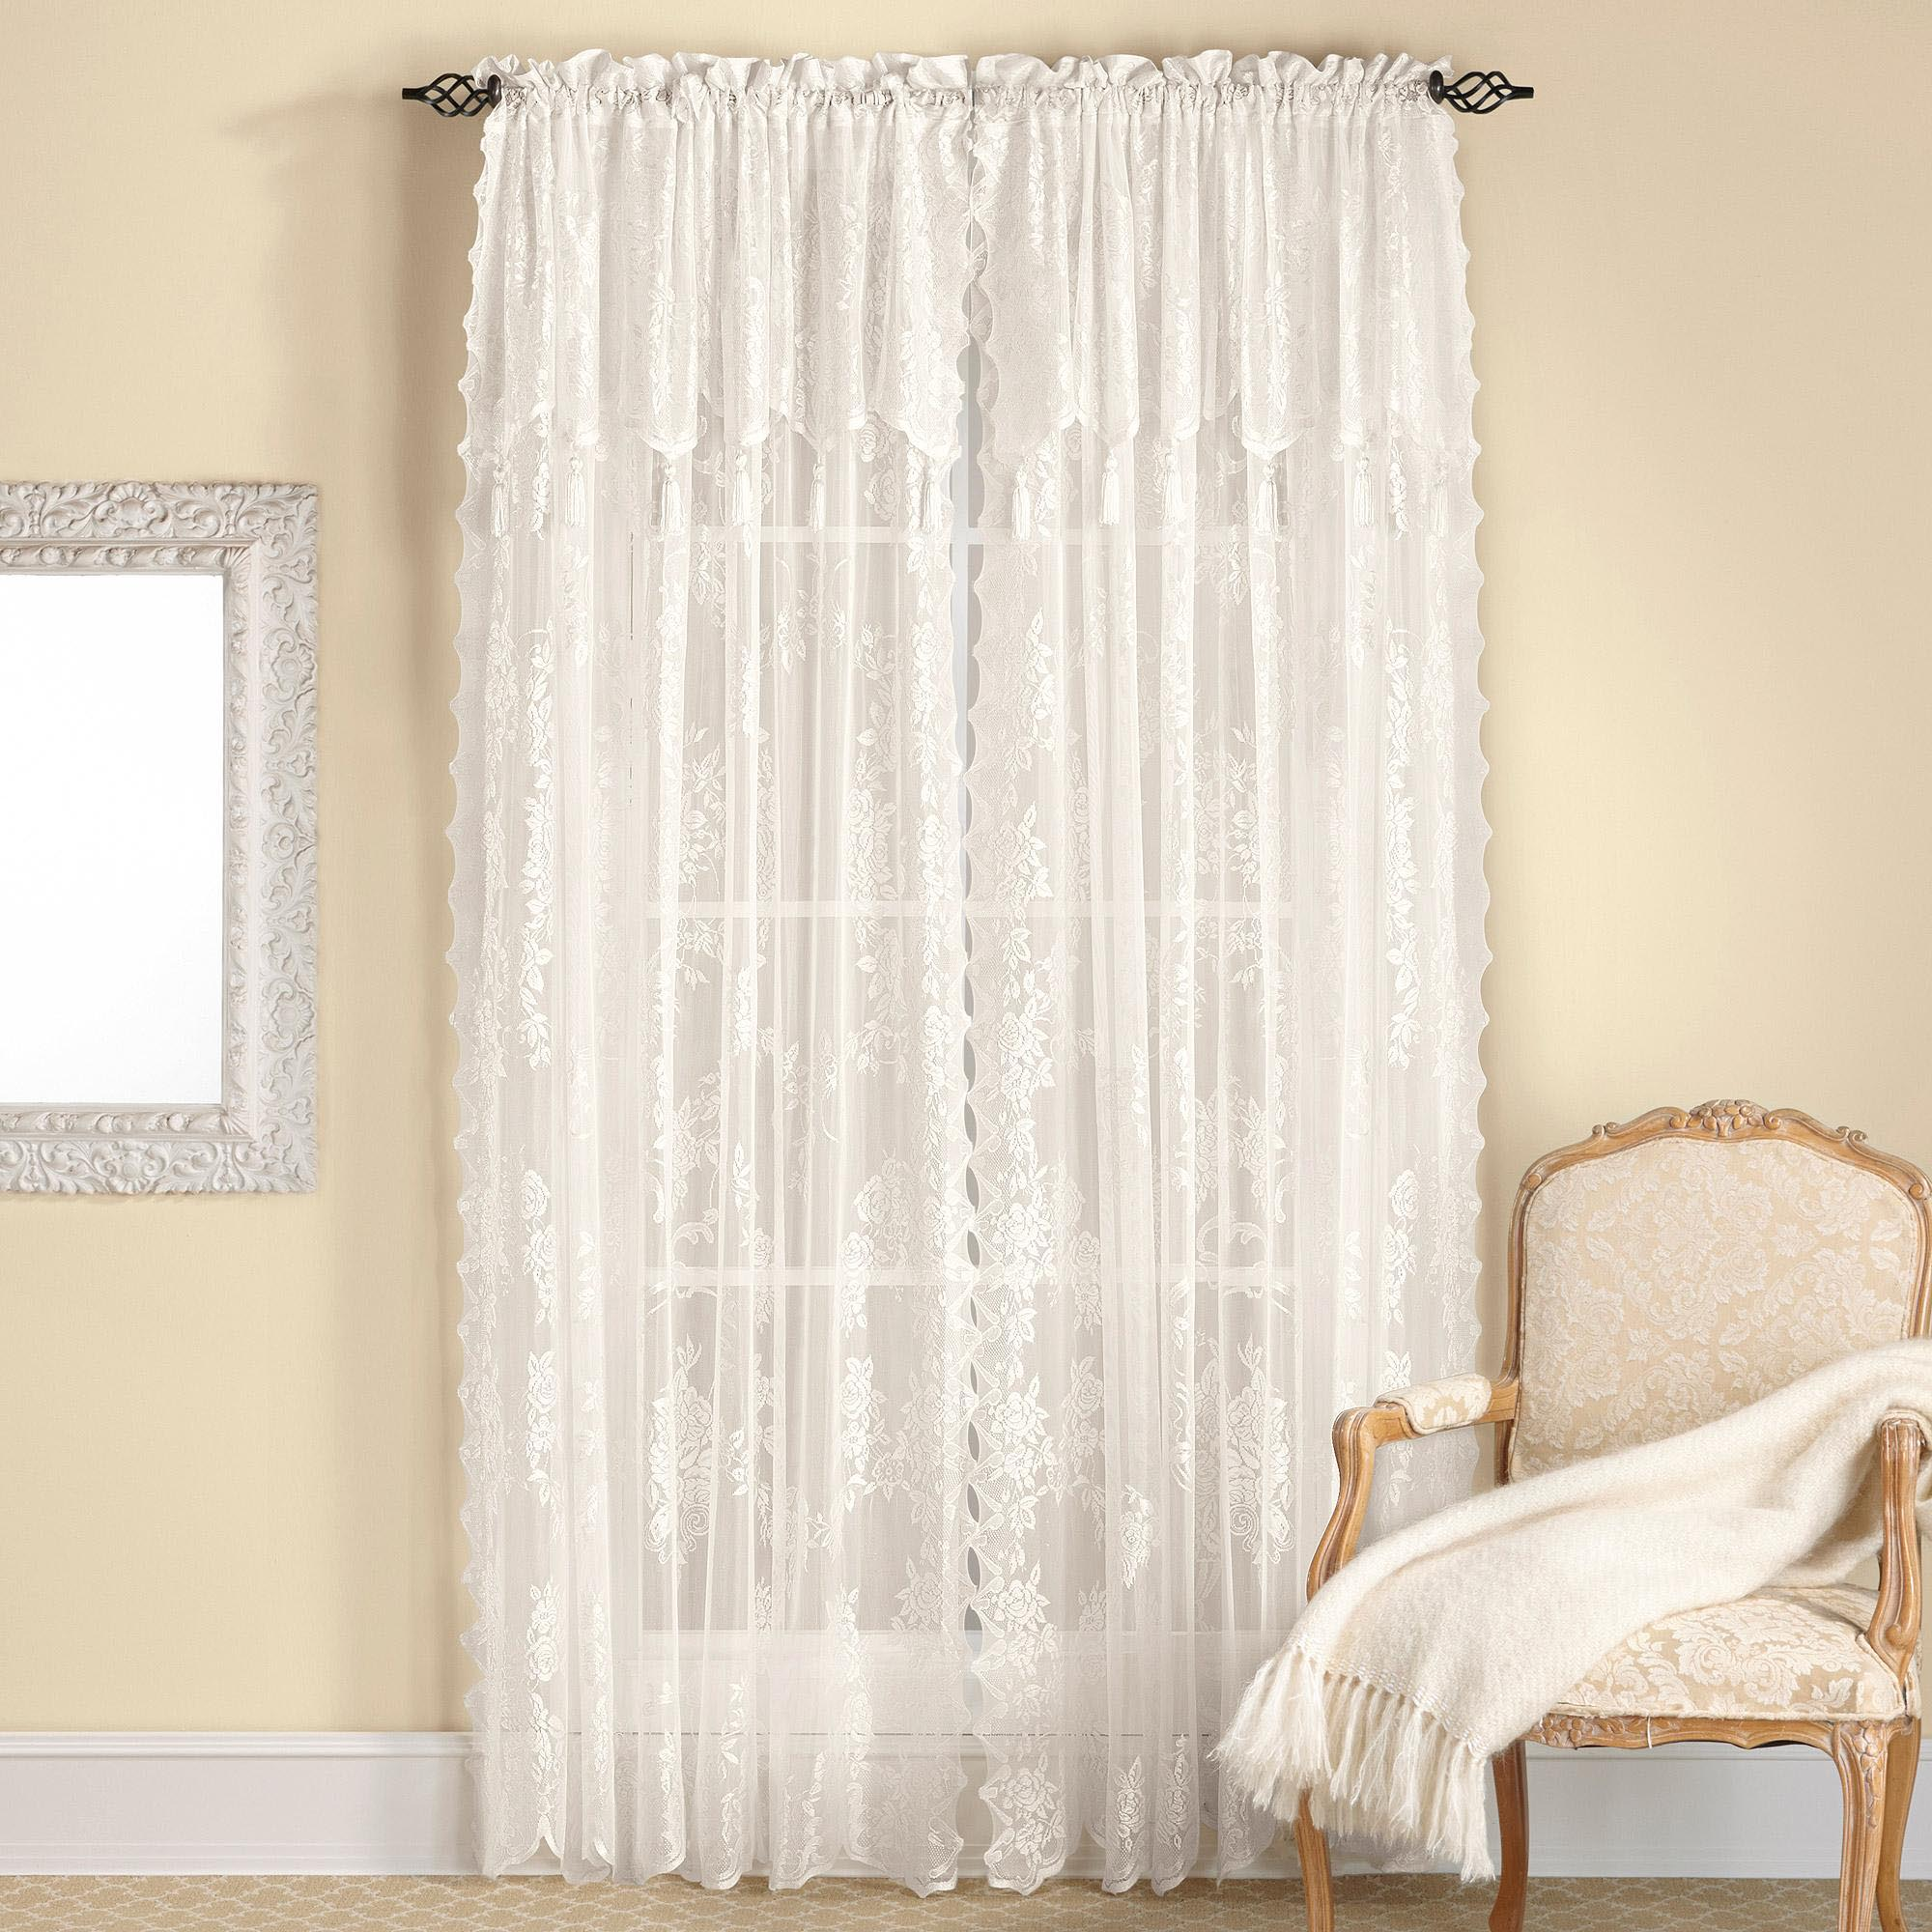 Living Room Curtains With Attached Valance Window Treatments Design Ideas